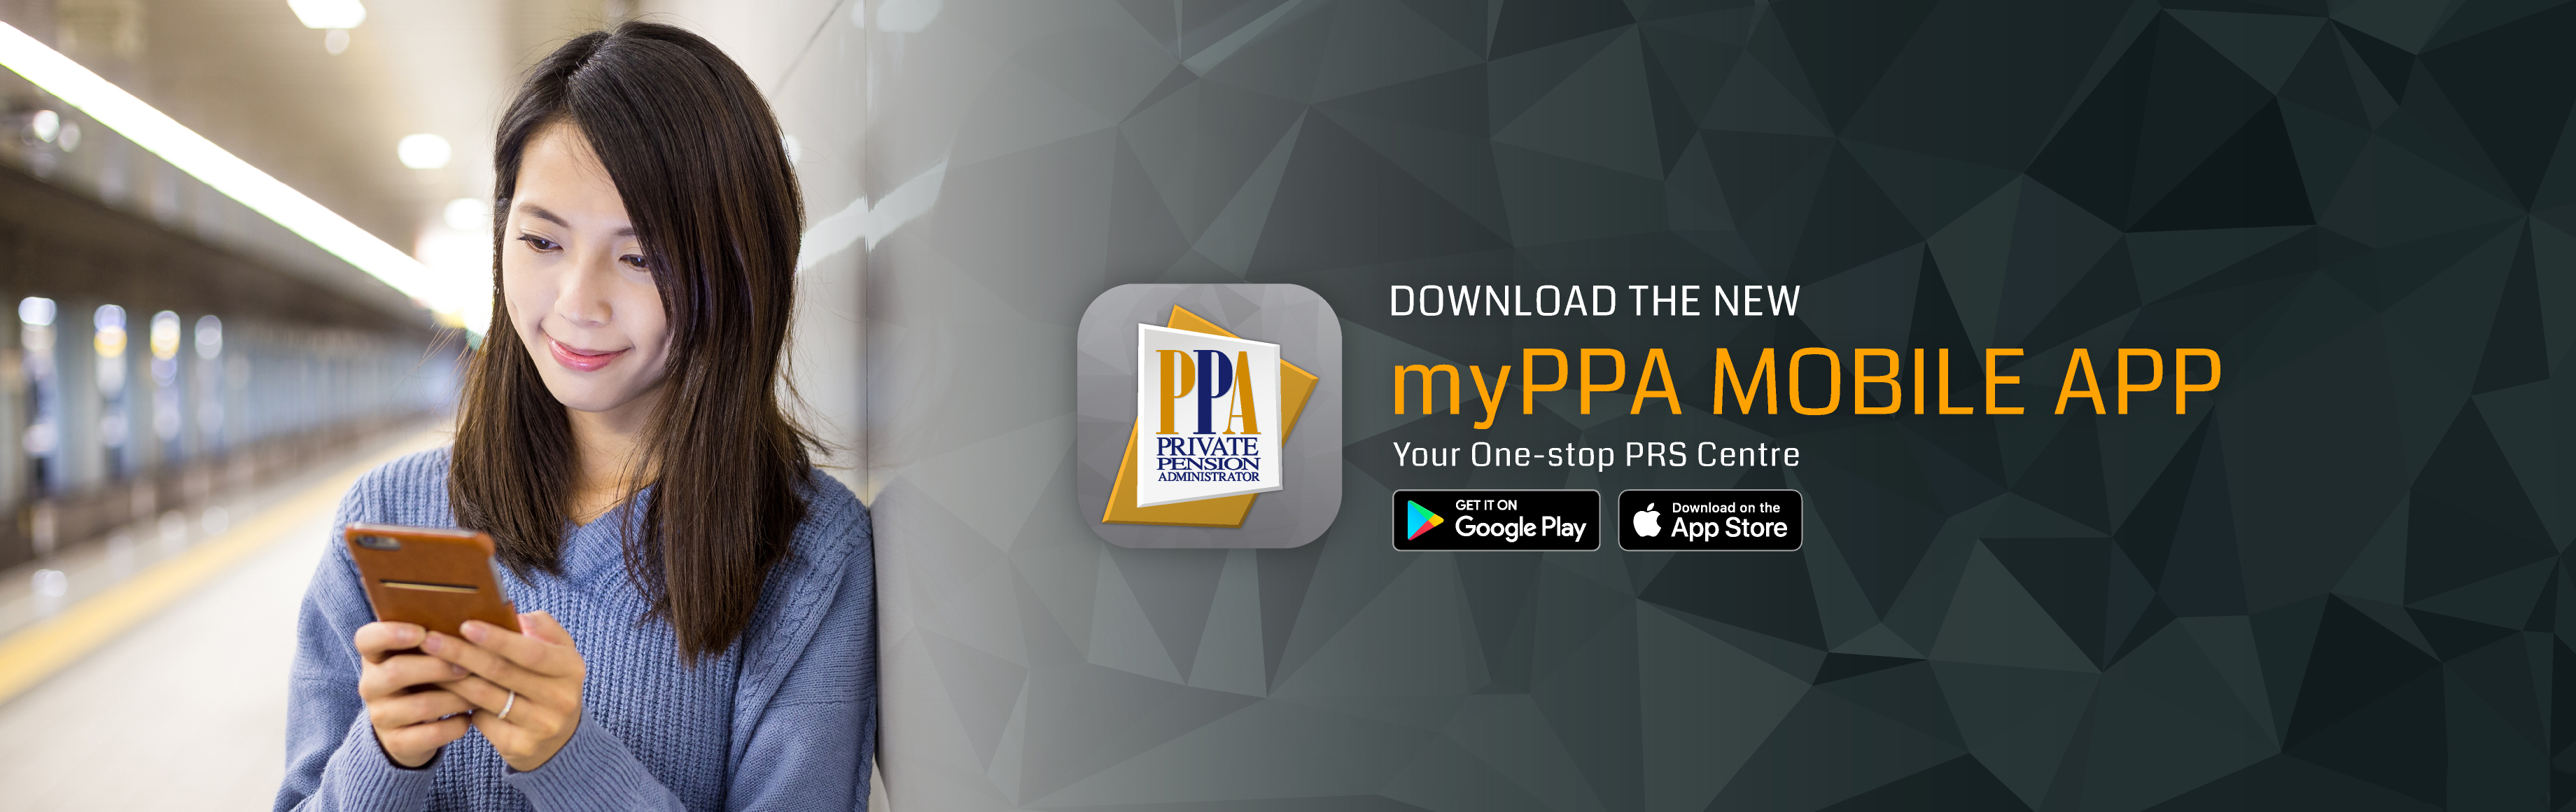 myPPAapp_PPA-Website-Banner-(R5)_Jul17